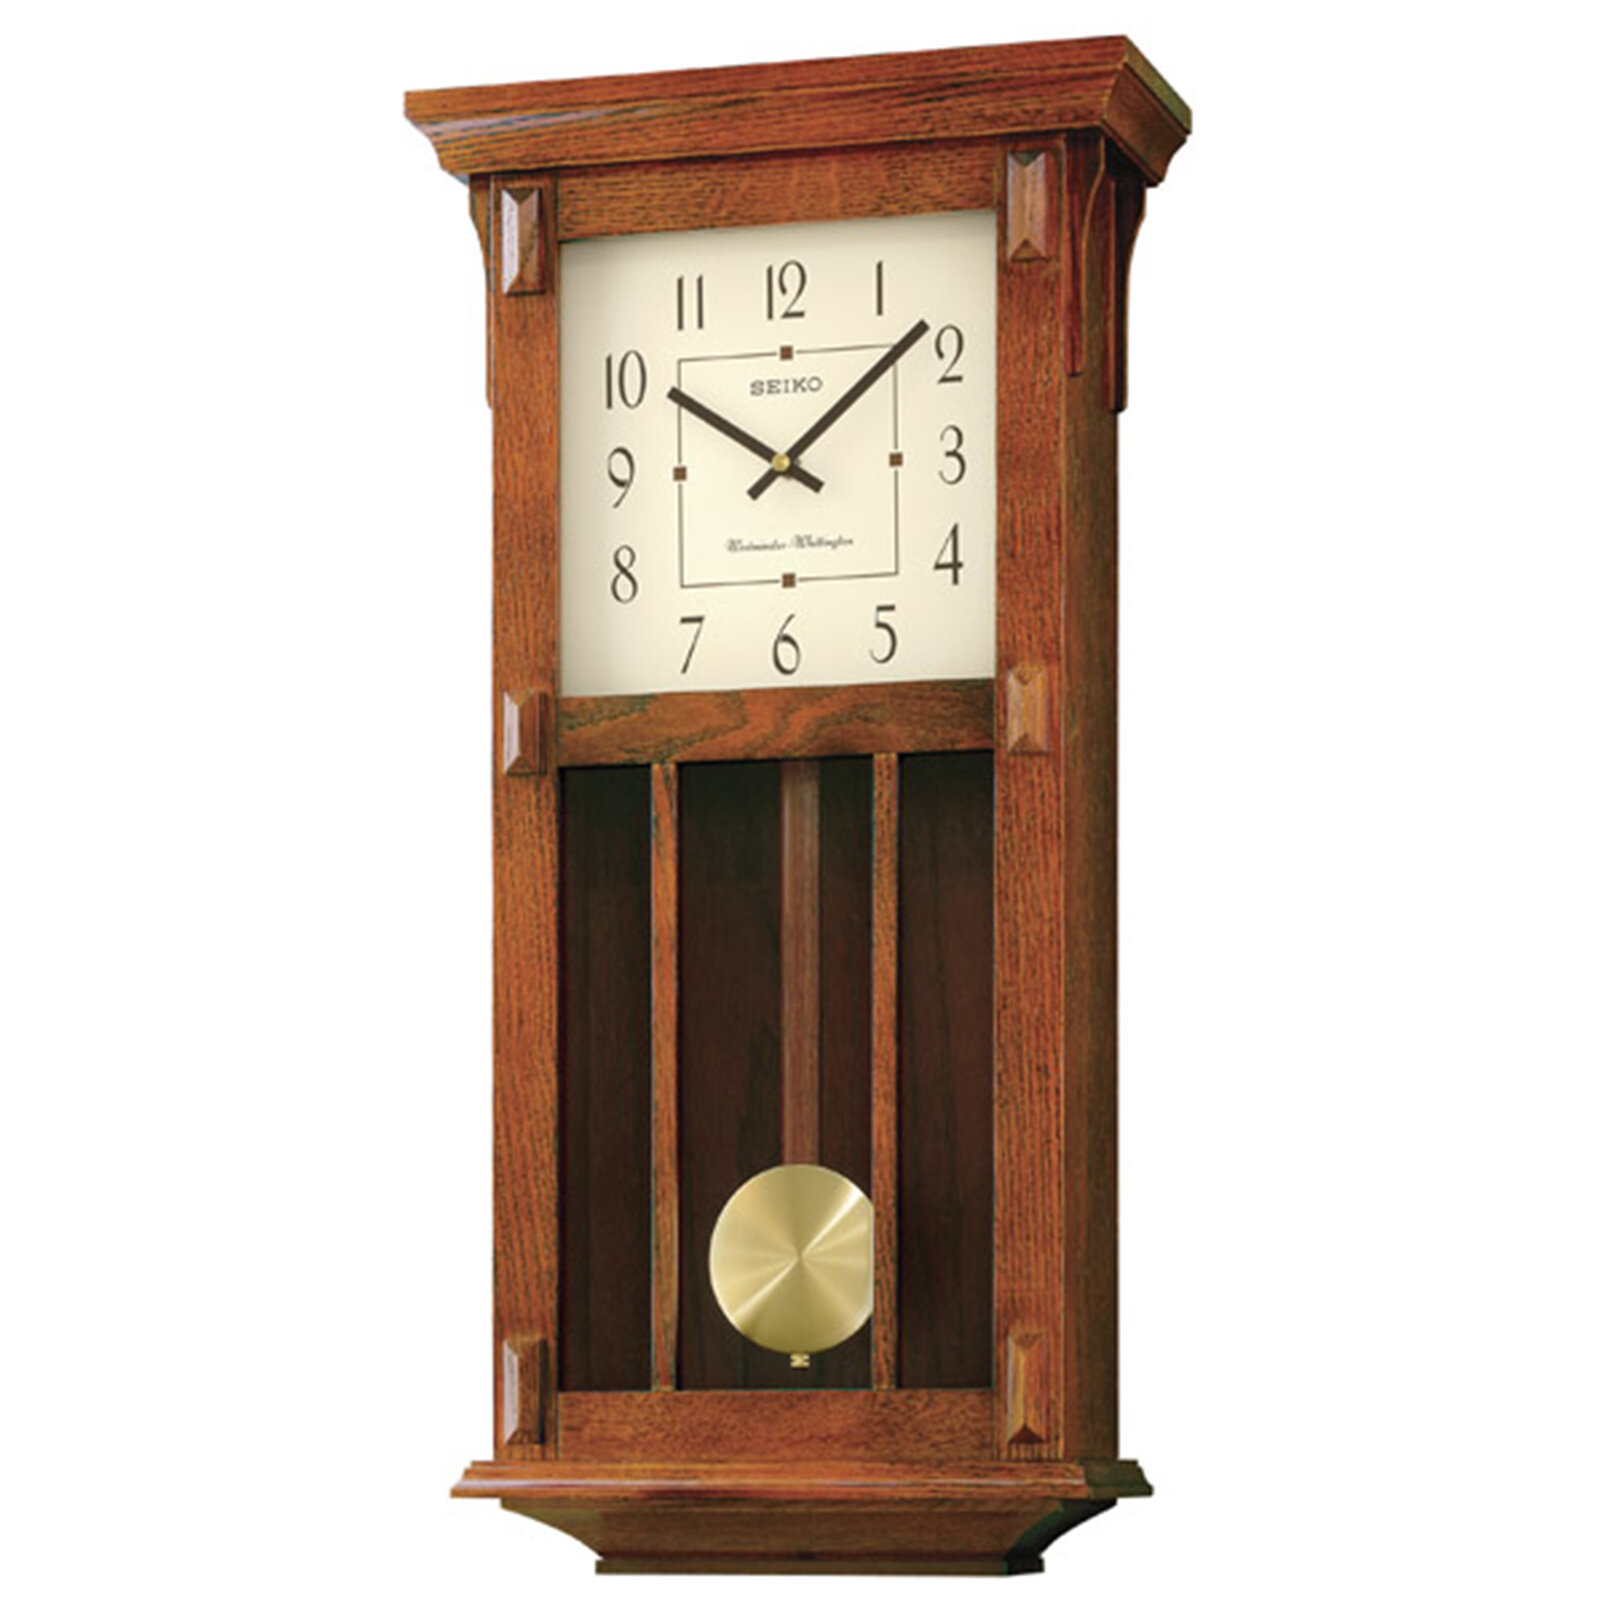 Seiko Mission Pendulum Wall Clock Reviews Wayfair